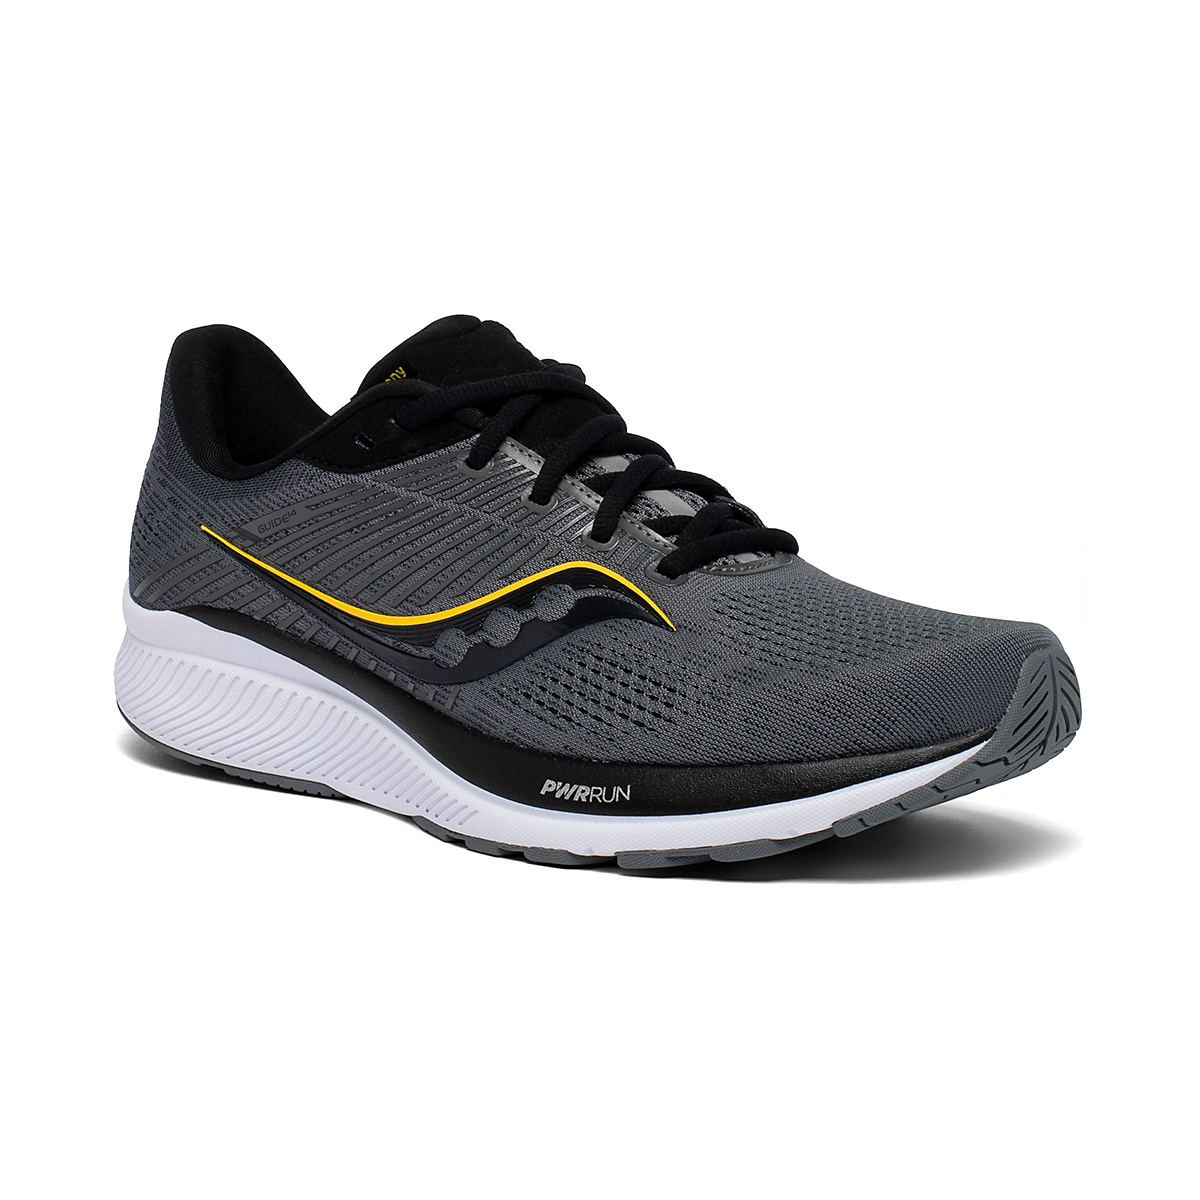 Men's Saucony Guide 14 Running Shoe, , large, image 2